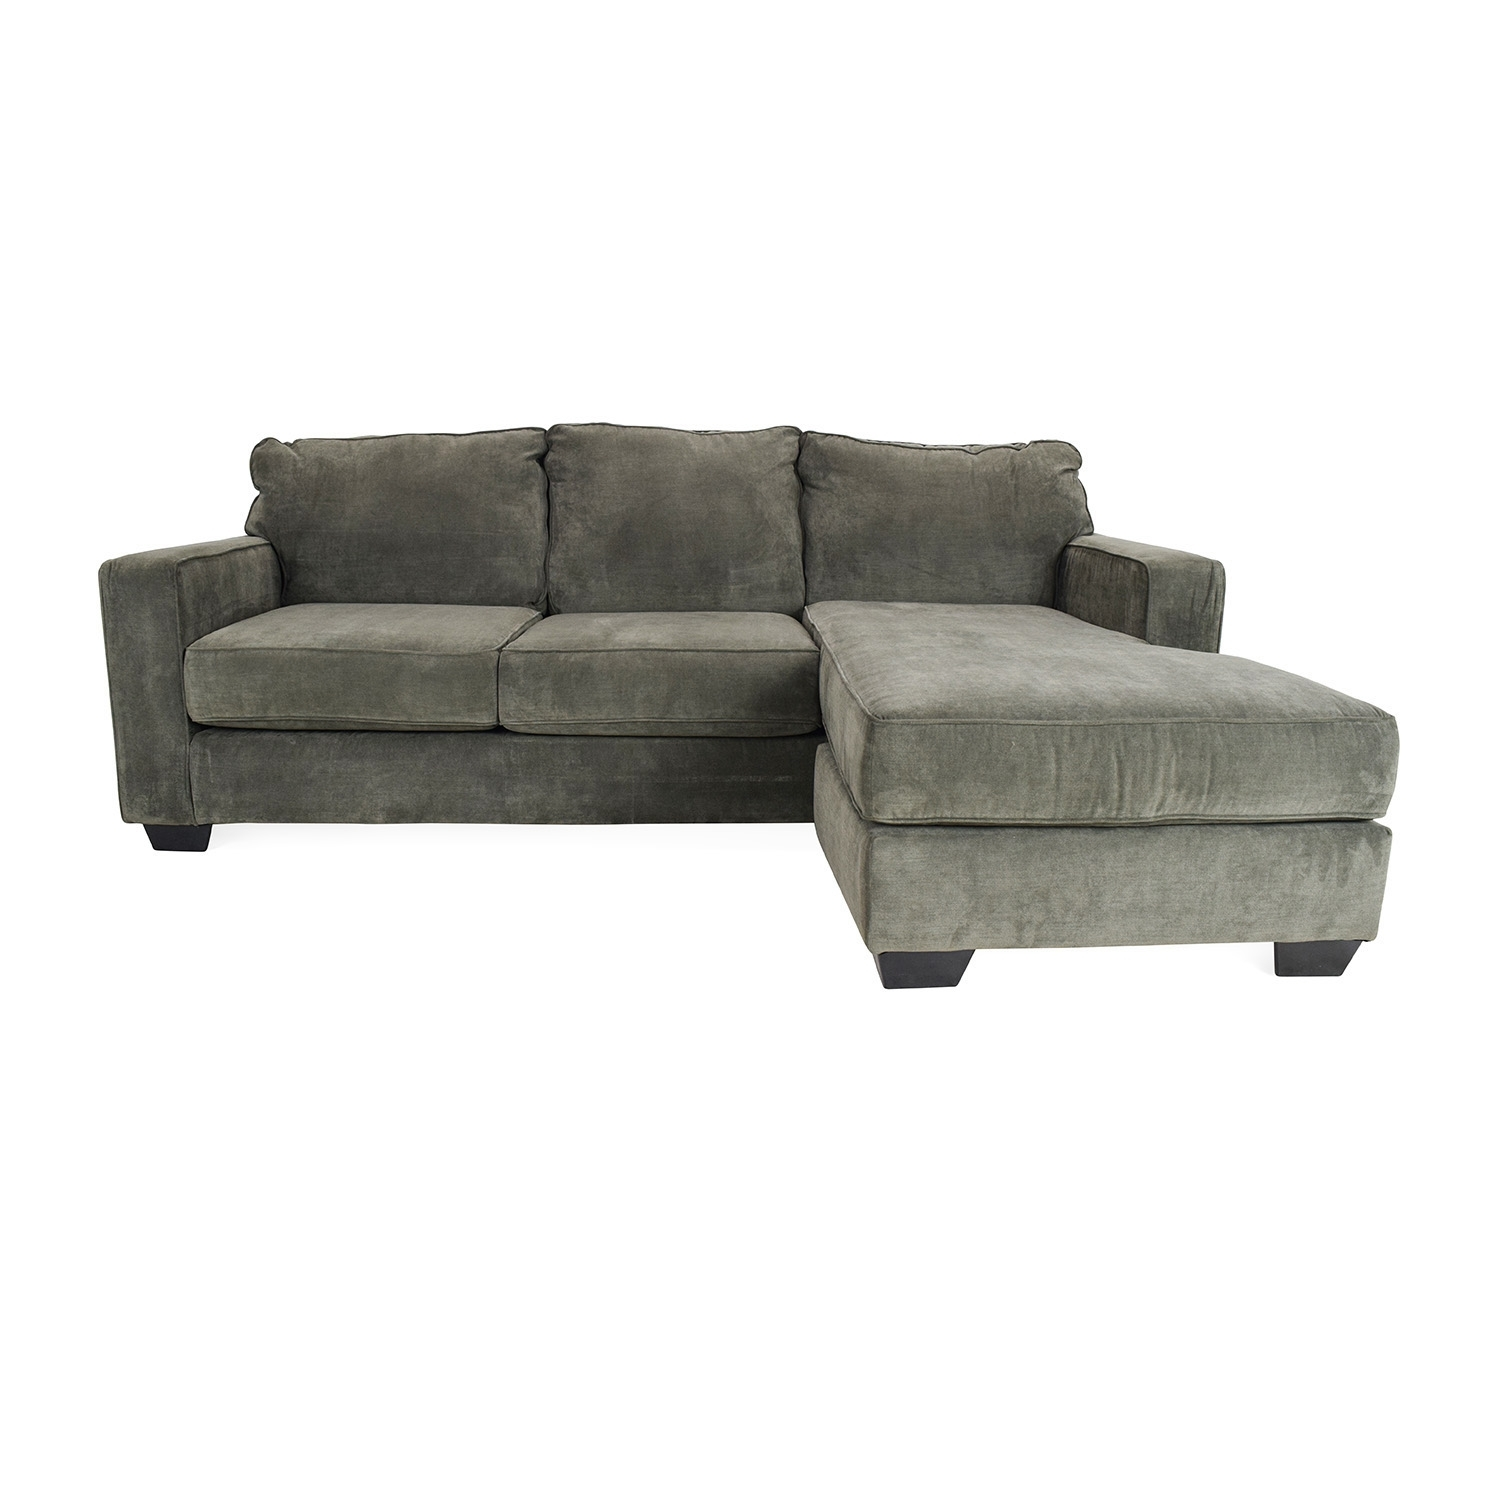 54% Off – Jennifer Convertibles Jennifer Convertibles Sectional Sofa Throughout Jennifer Convertibles Sectional Sofas (View 2 of 10)